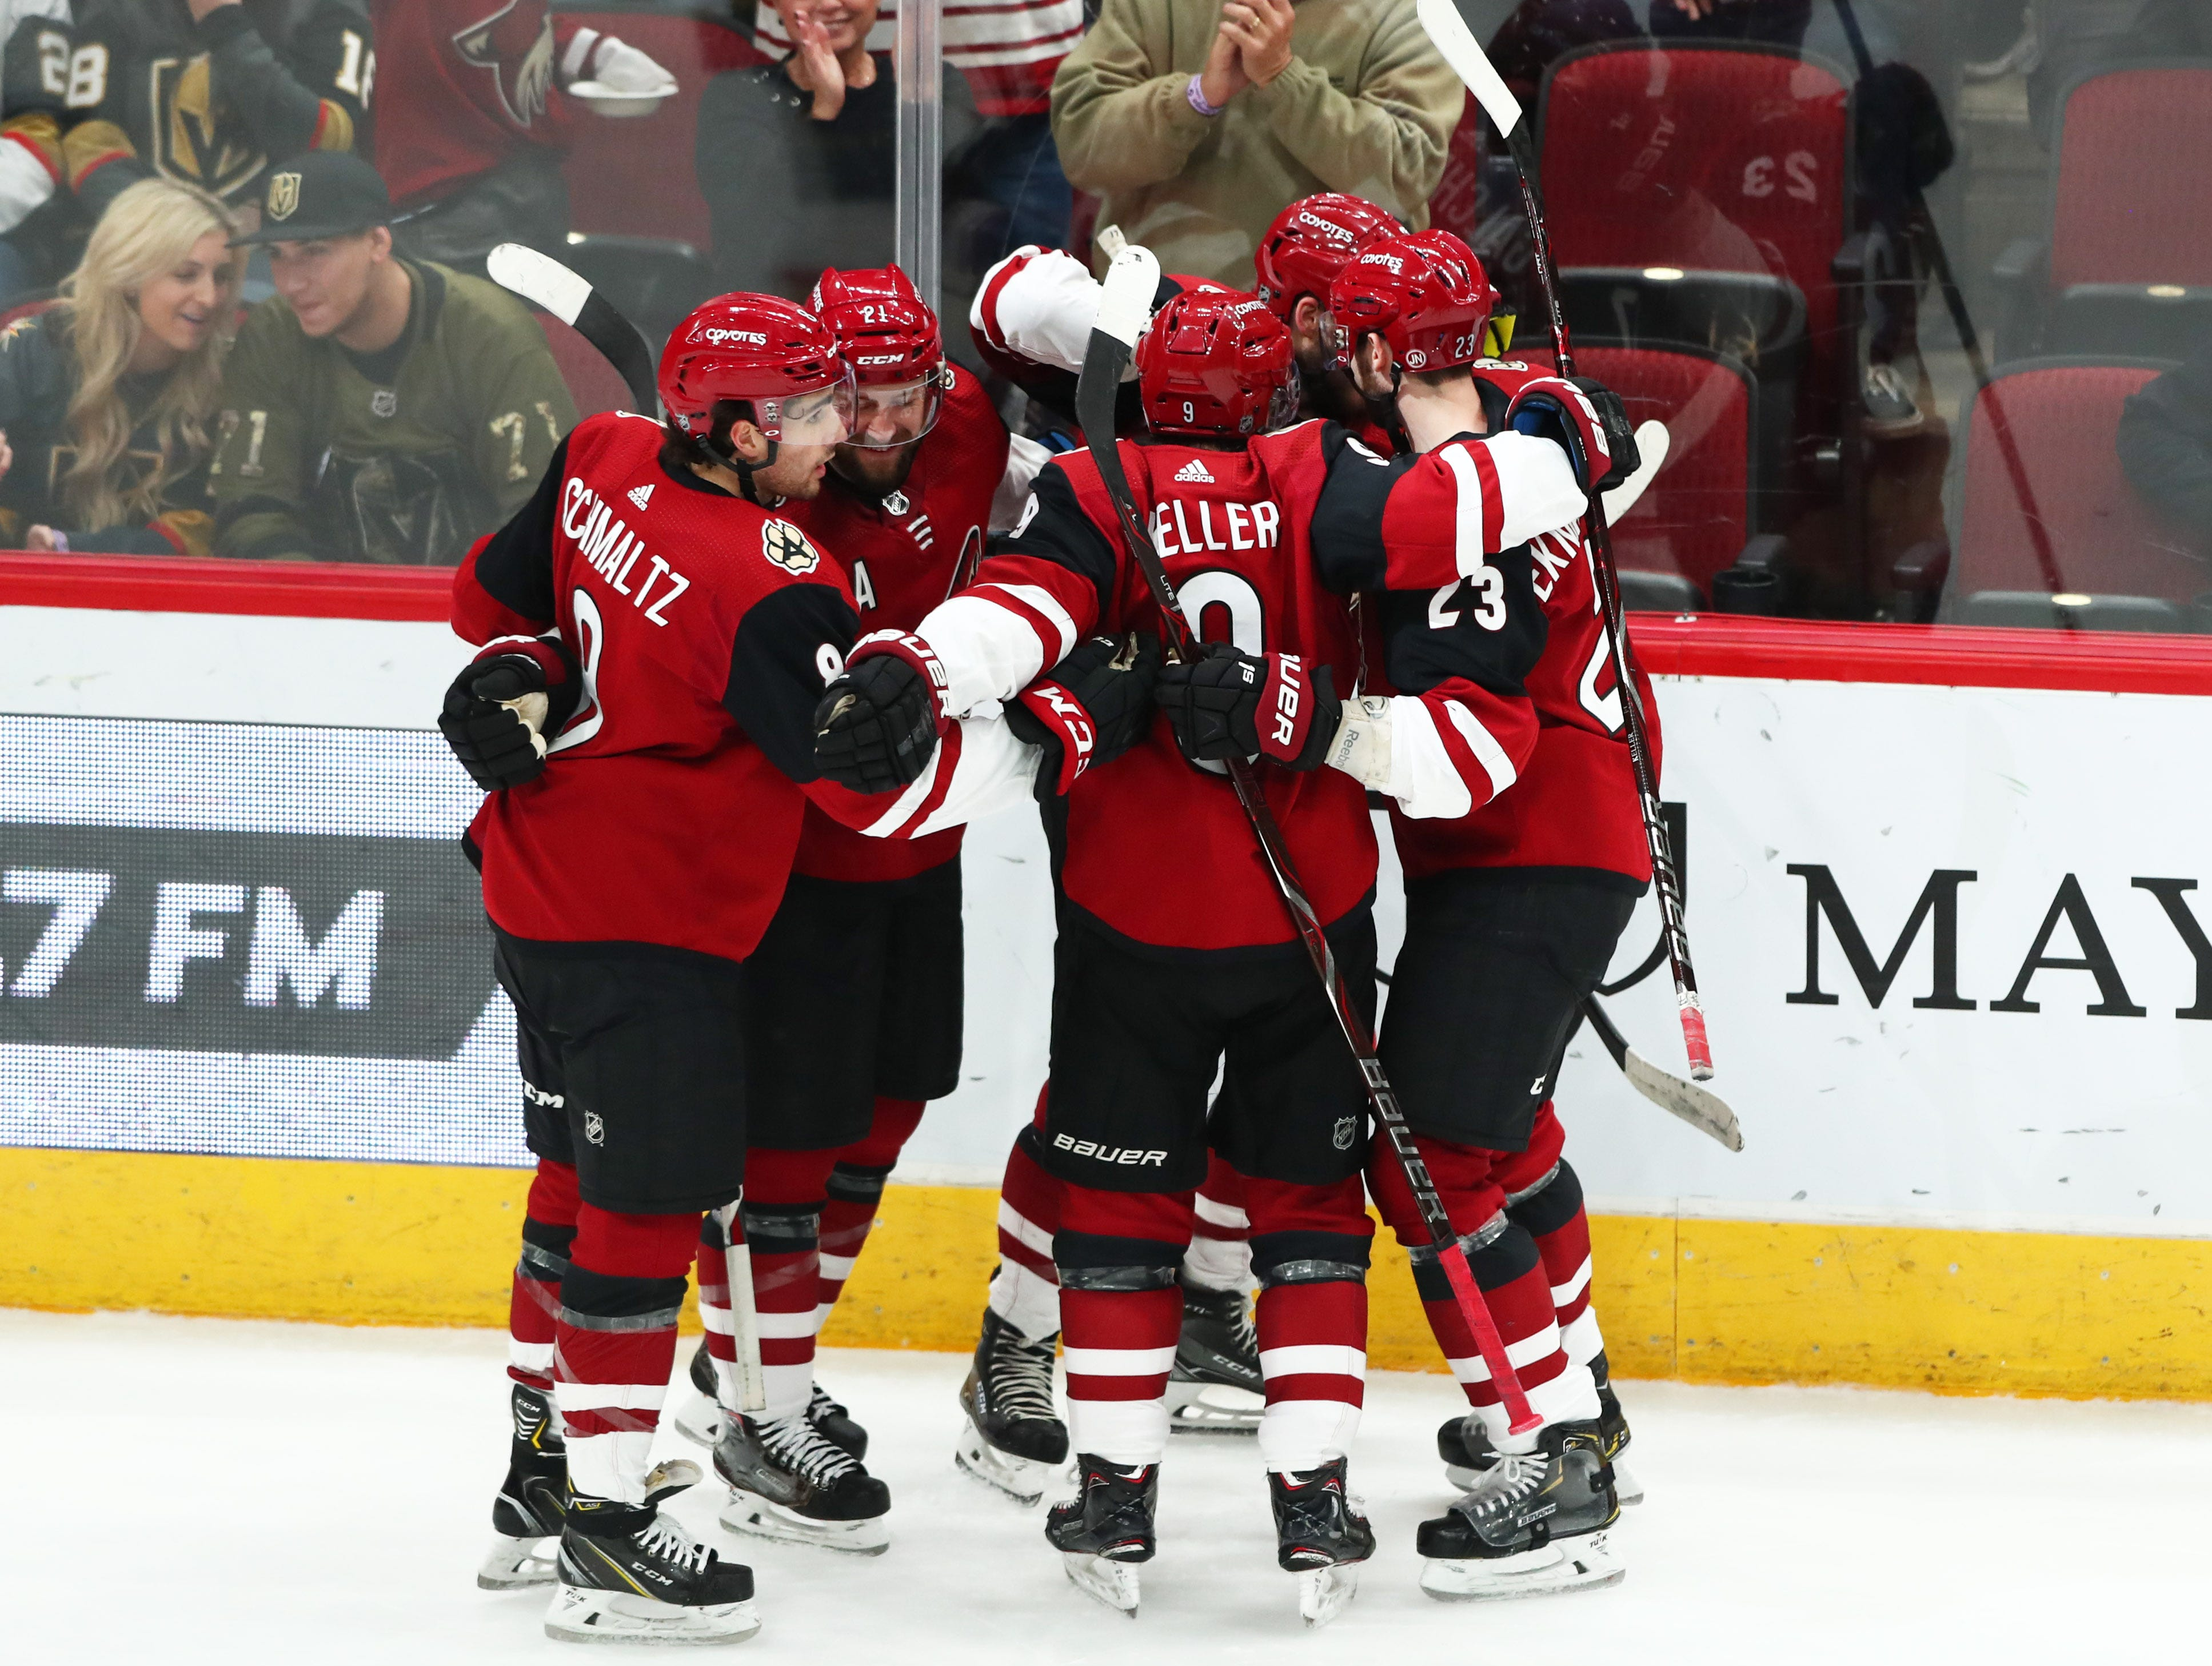 Dec 30, 2018; Glendale, AZ, USA; Arizona Coyotes center Alex Galchenyuk (17) celebrates with teammates after scoring a second period goal against the Vegas Golden Knights at Gila River Arena. Mandatory Credit: Mark J. Rebilas-USA TODAY Sports